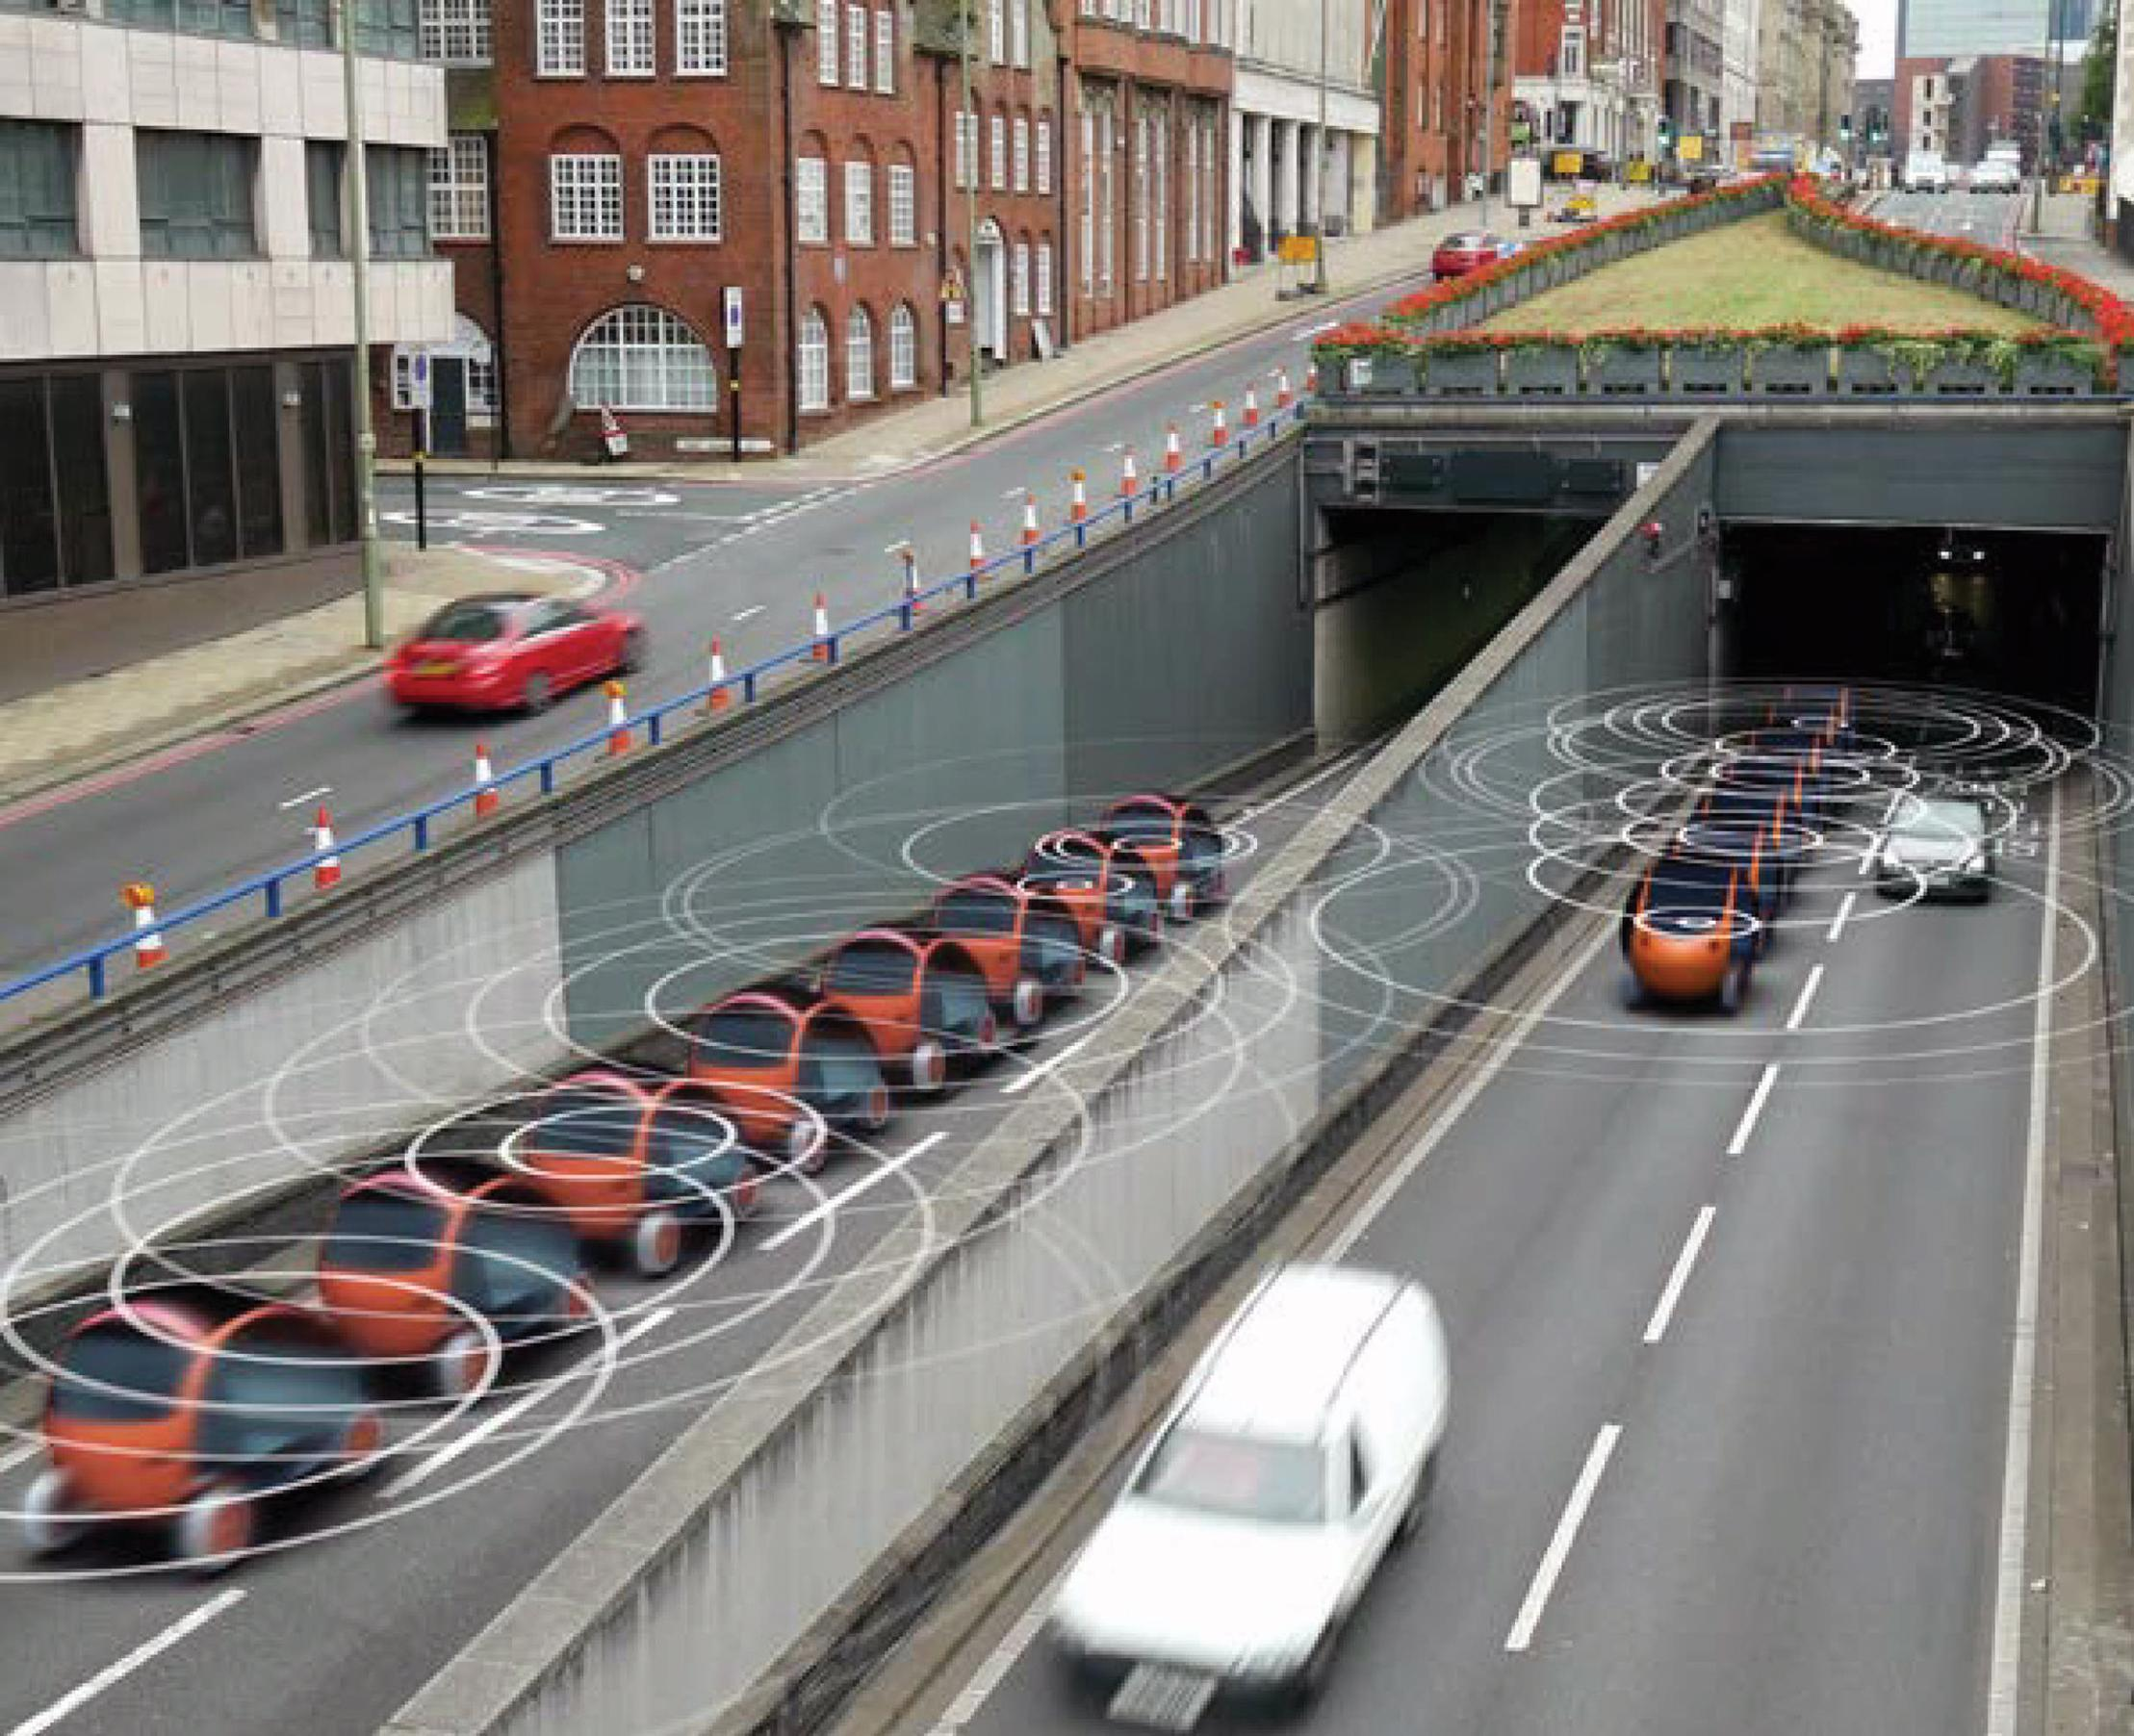 TfL probes policy & regulatory tools to control use of CAVs